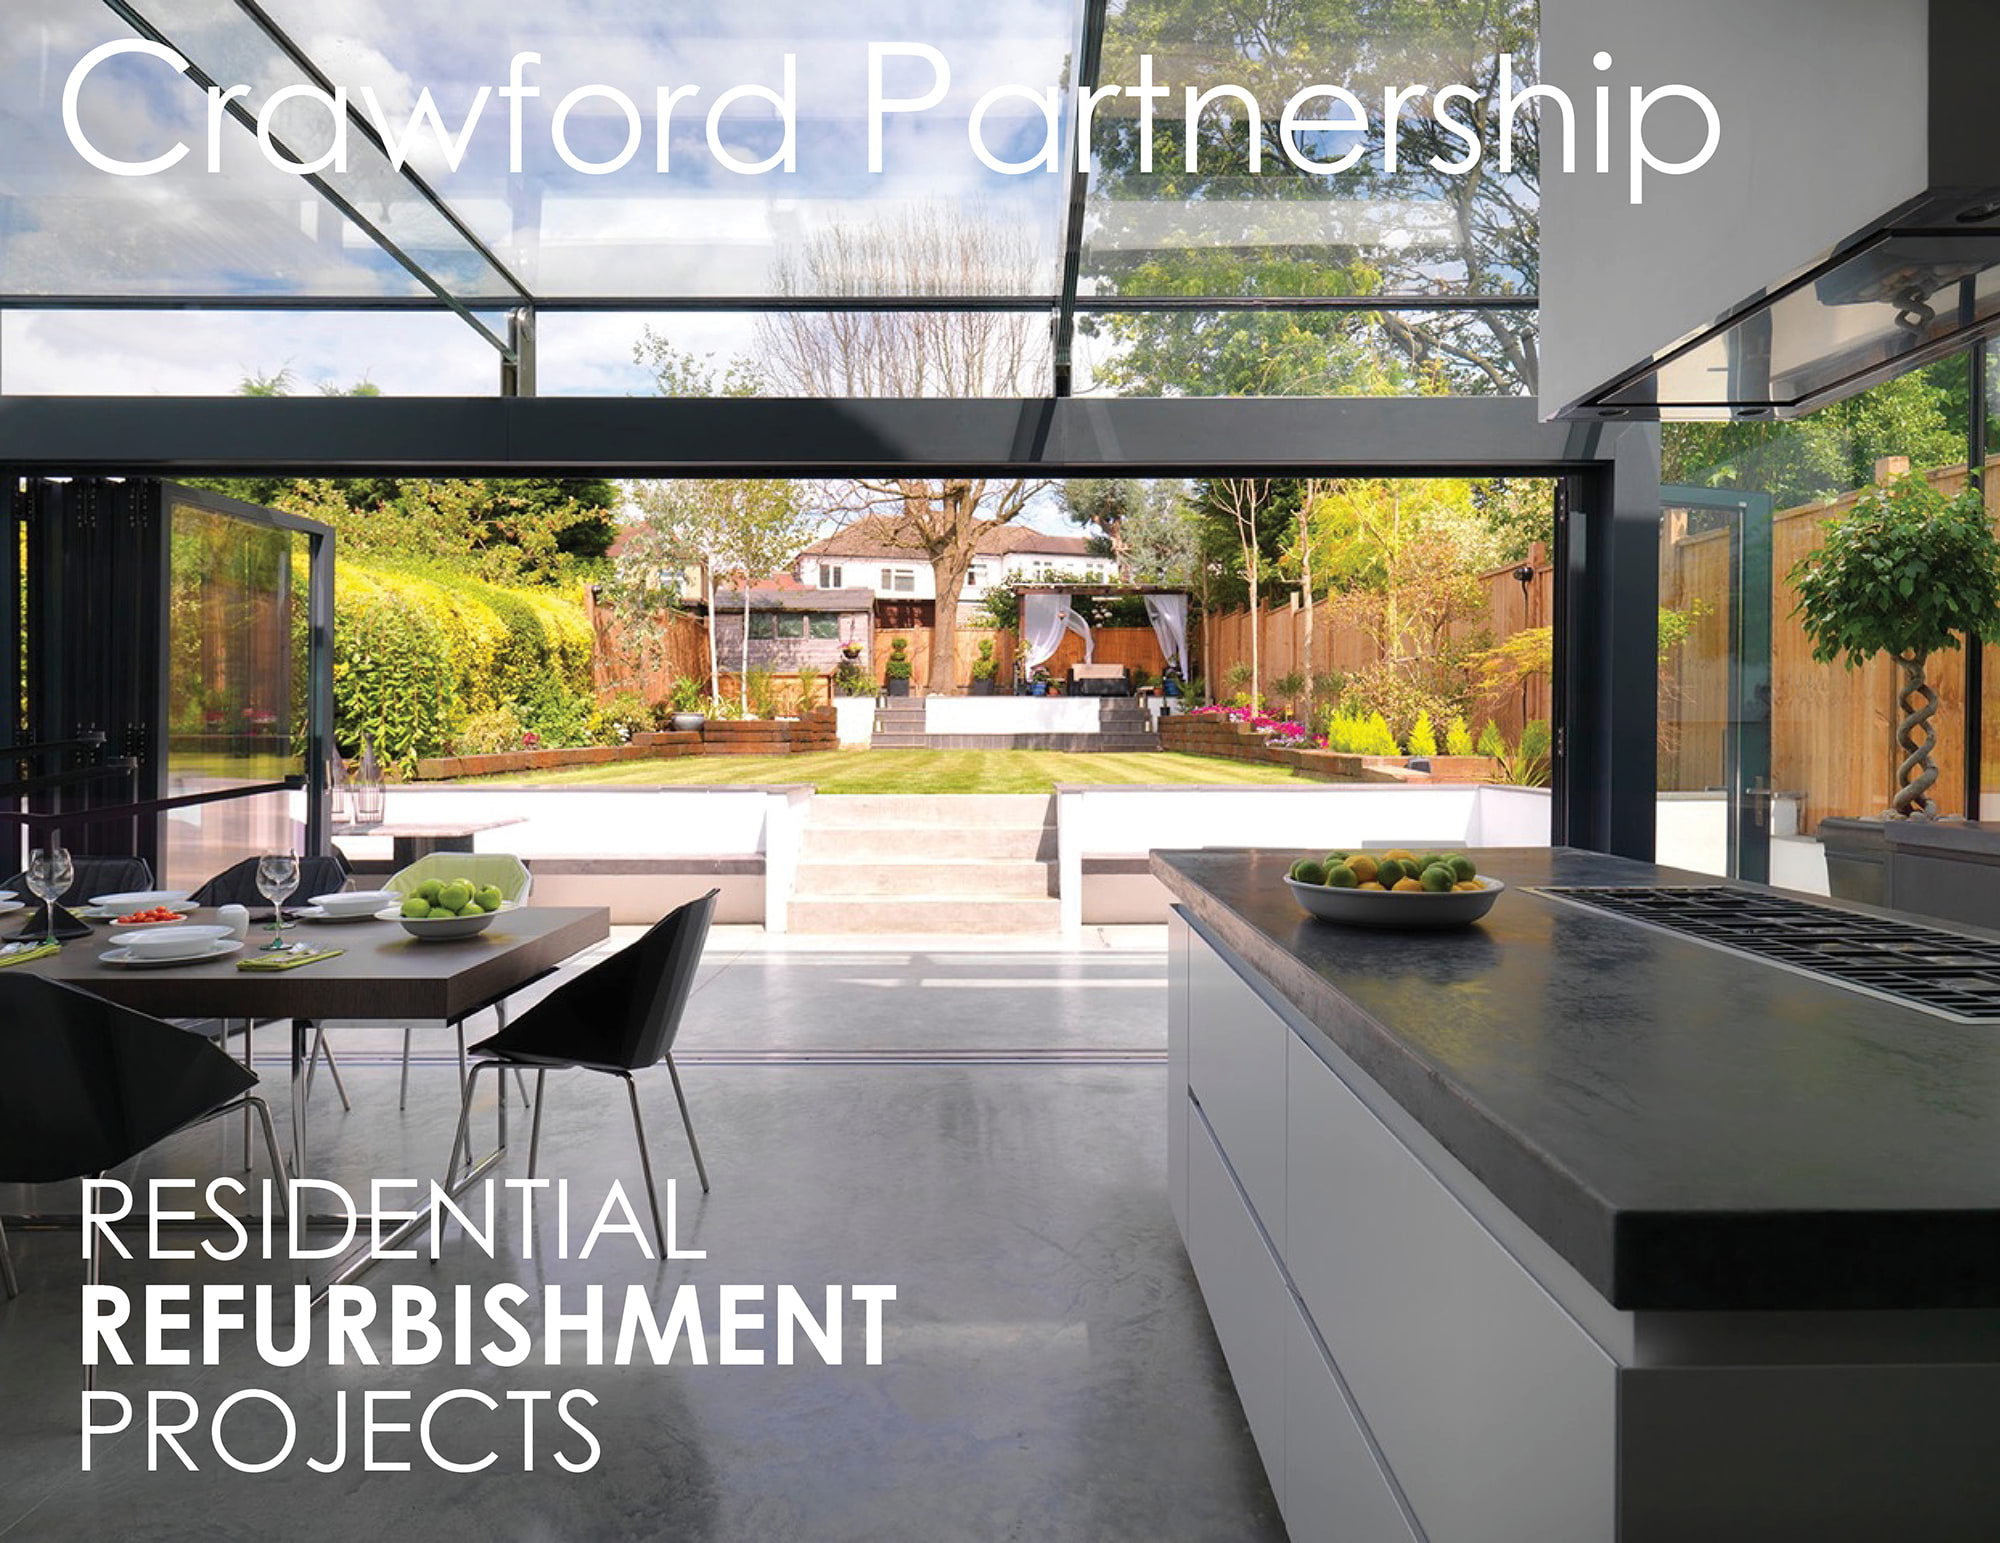 Crawford Partnership_News_RRP